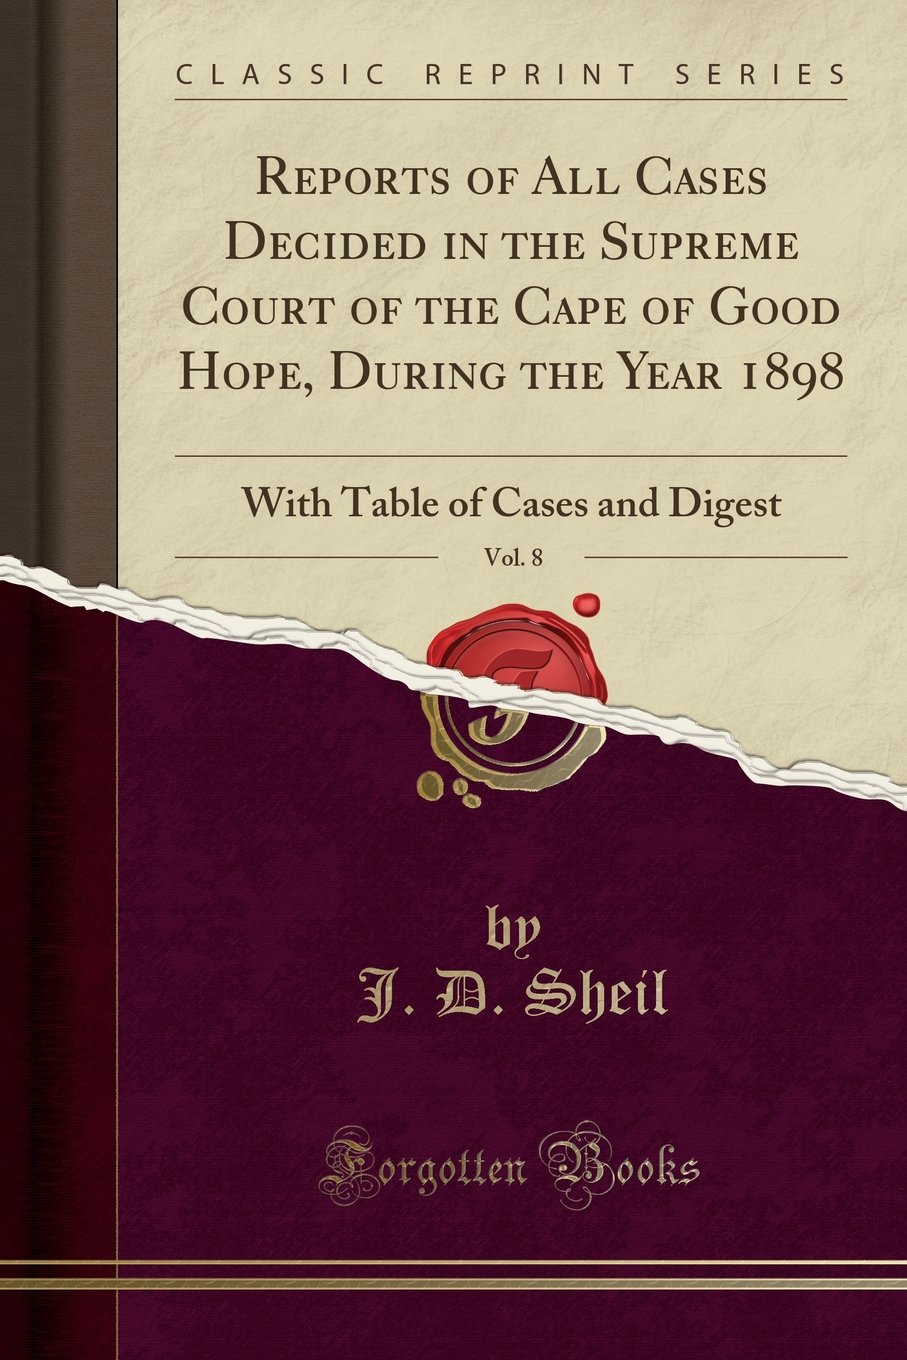 Read Online Reports of All Cases Decided in the Supreme Court of the Cape of Good Hope, During the Year 1898, Vol. 8: With Table of Cases and Digest (Classic Reprint) pdf epub